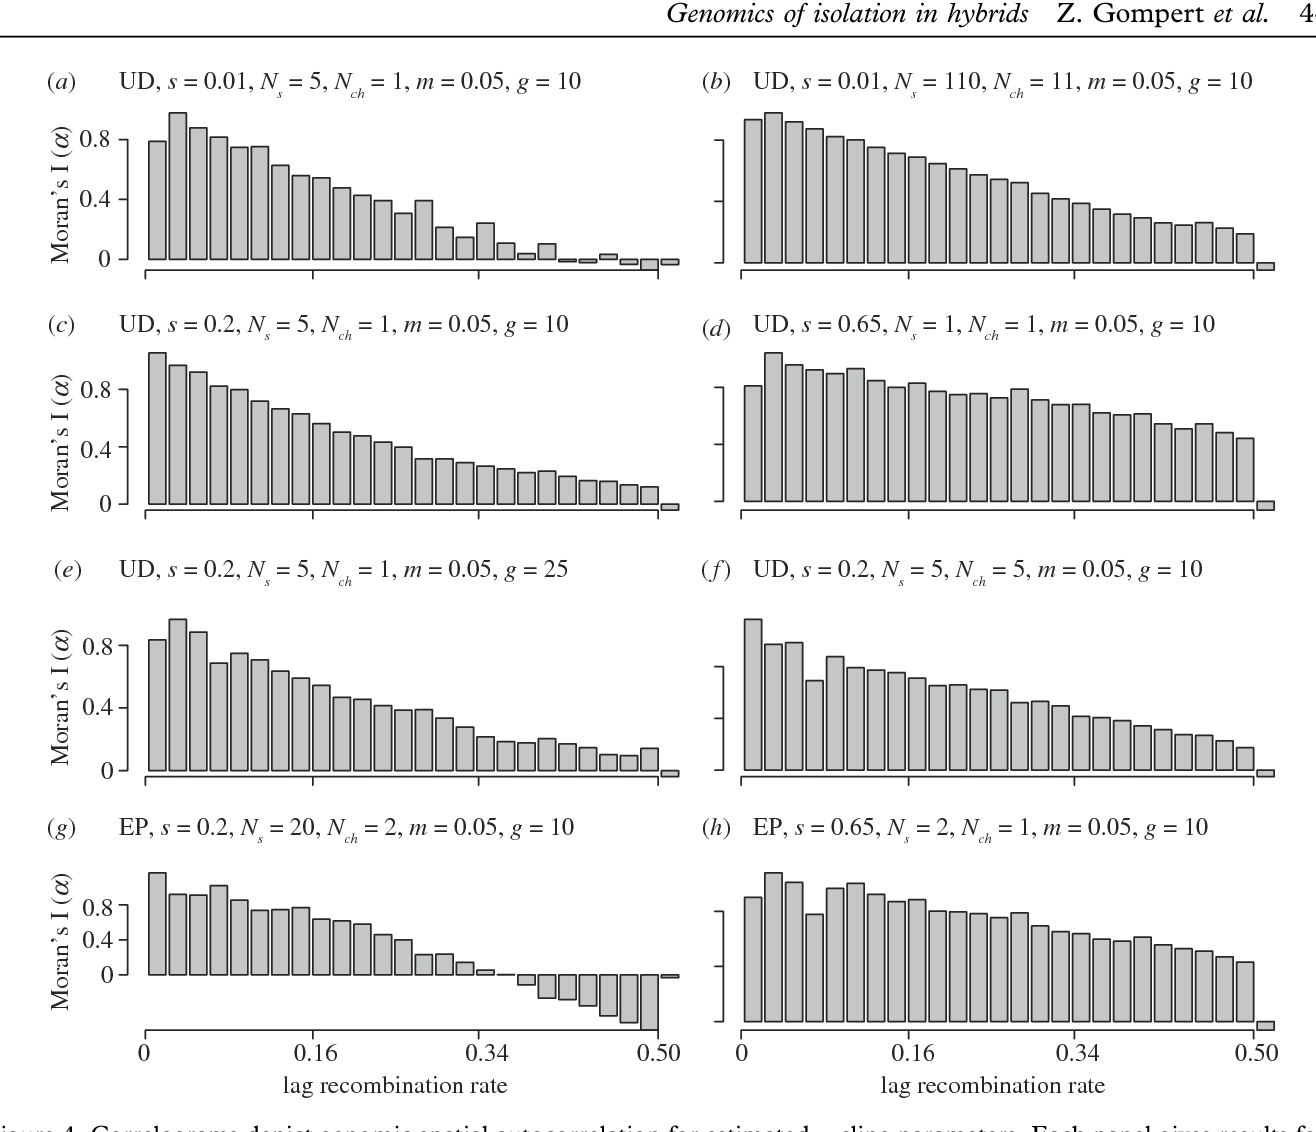 Figure 4 from One con of genom Genomics of isolation in hybrids